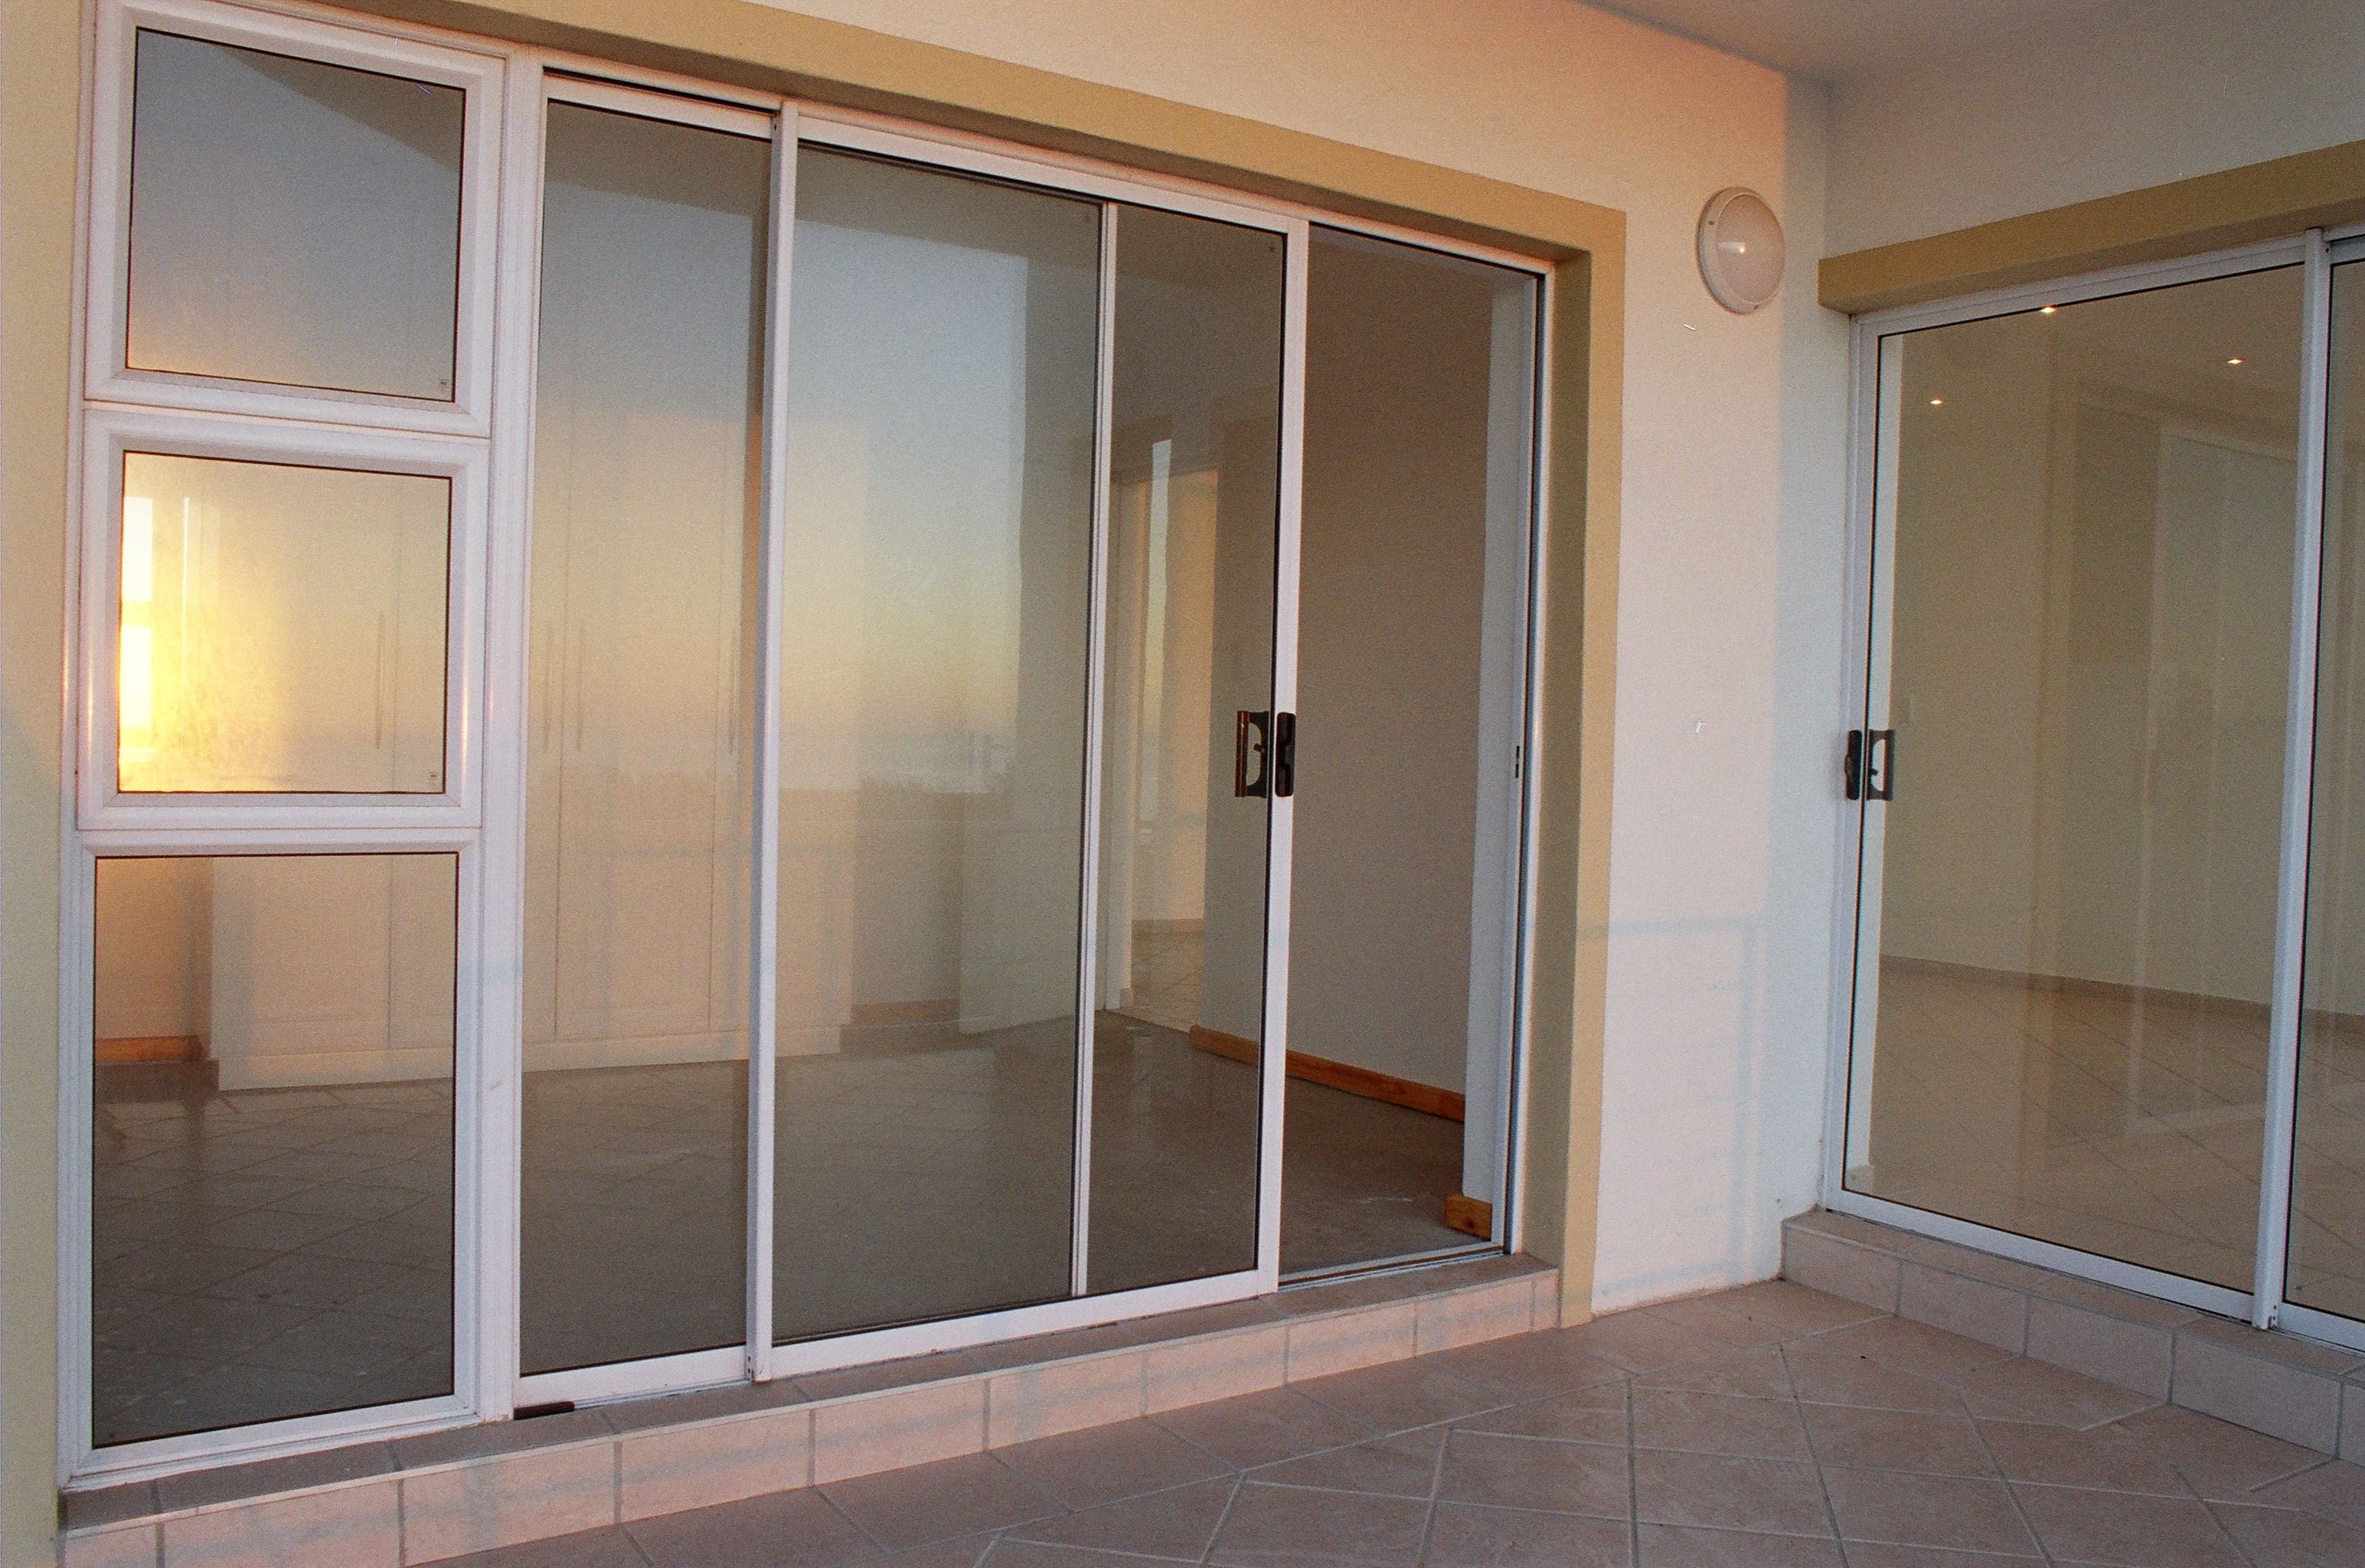 Gl Aluminium Eagle Doors Patio Sliding Sidelights For Windows And Showers South Africa Door Pic Home Decor Decoratio Jpg